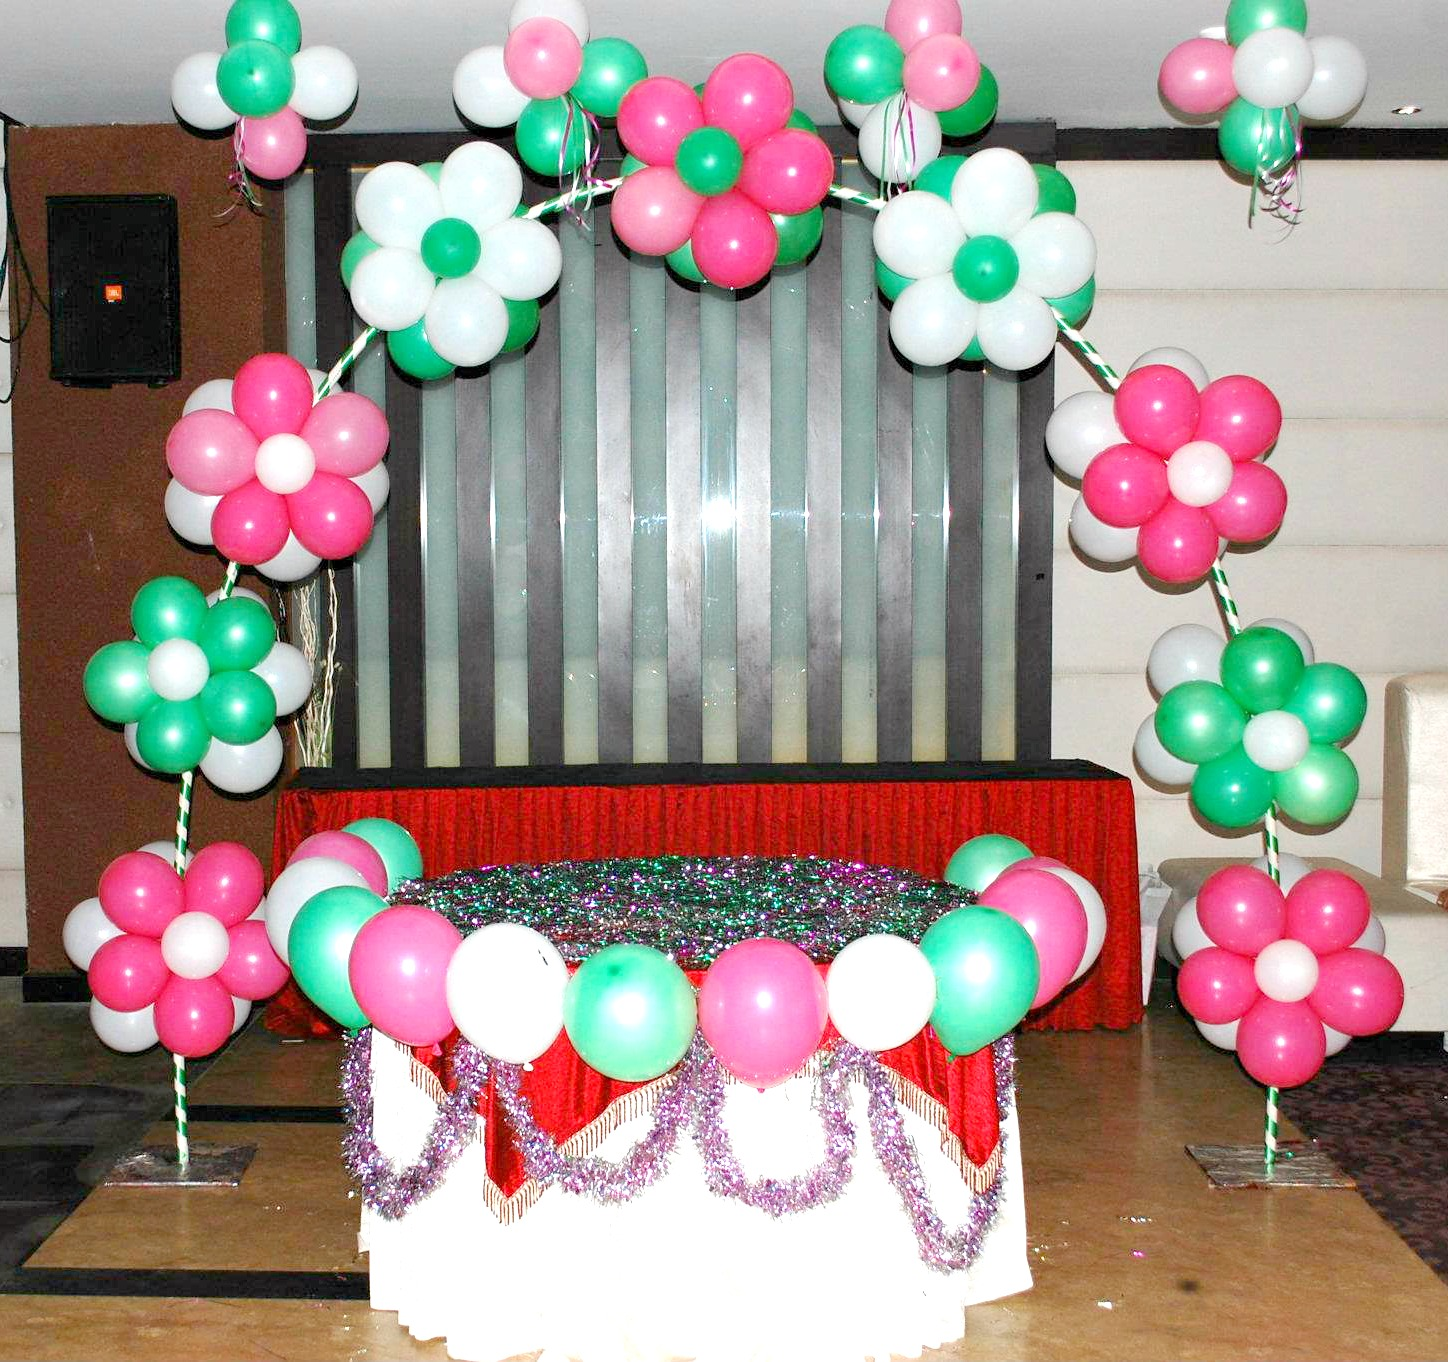 How to make balloon flowers 15 marvelous ways guide for Party decorations to make at home